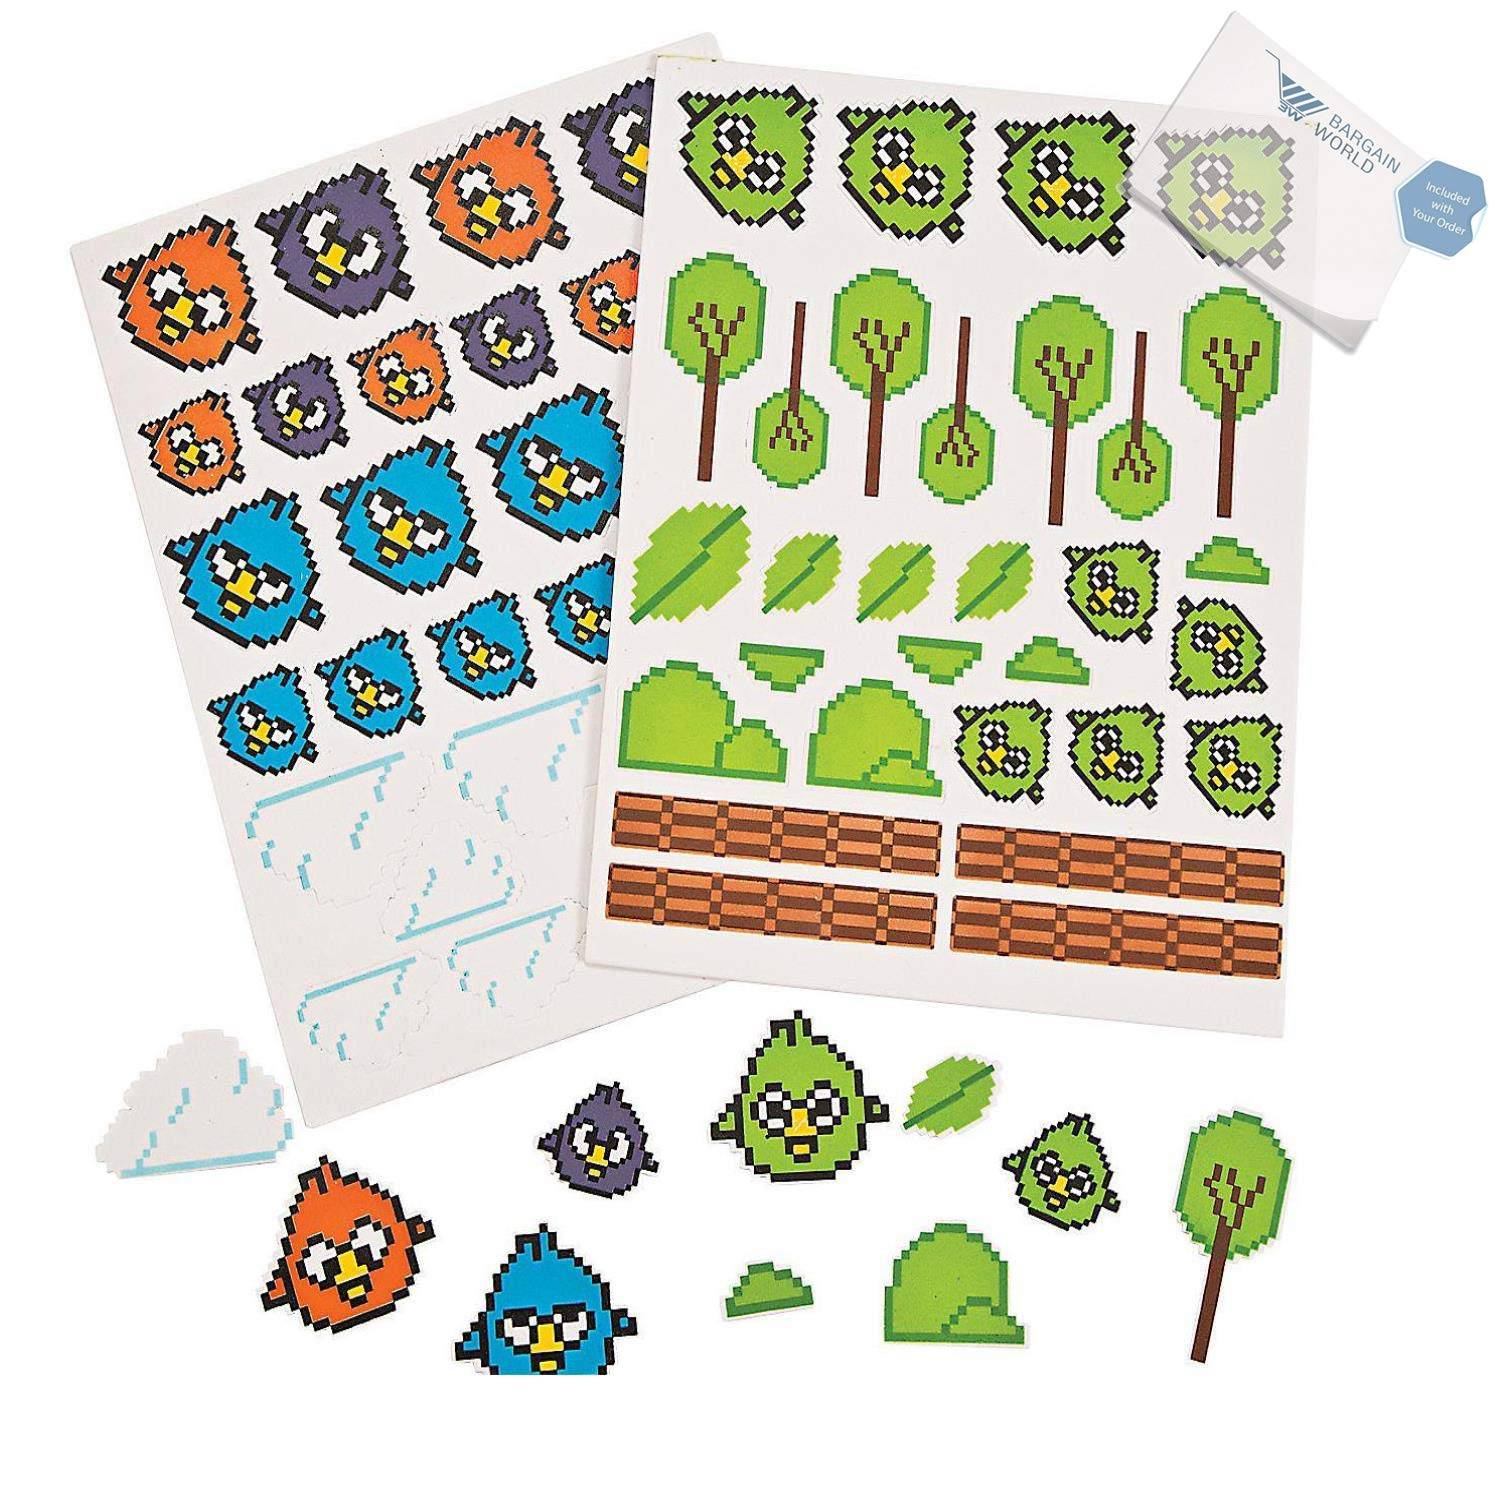 Bargain World Crazy Bird Foam Shapes (With Sticky Notes) by Bargain World (Image #1)